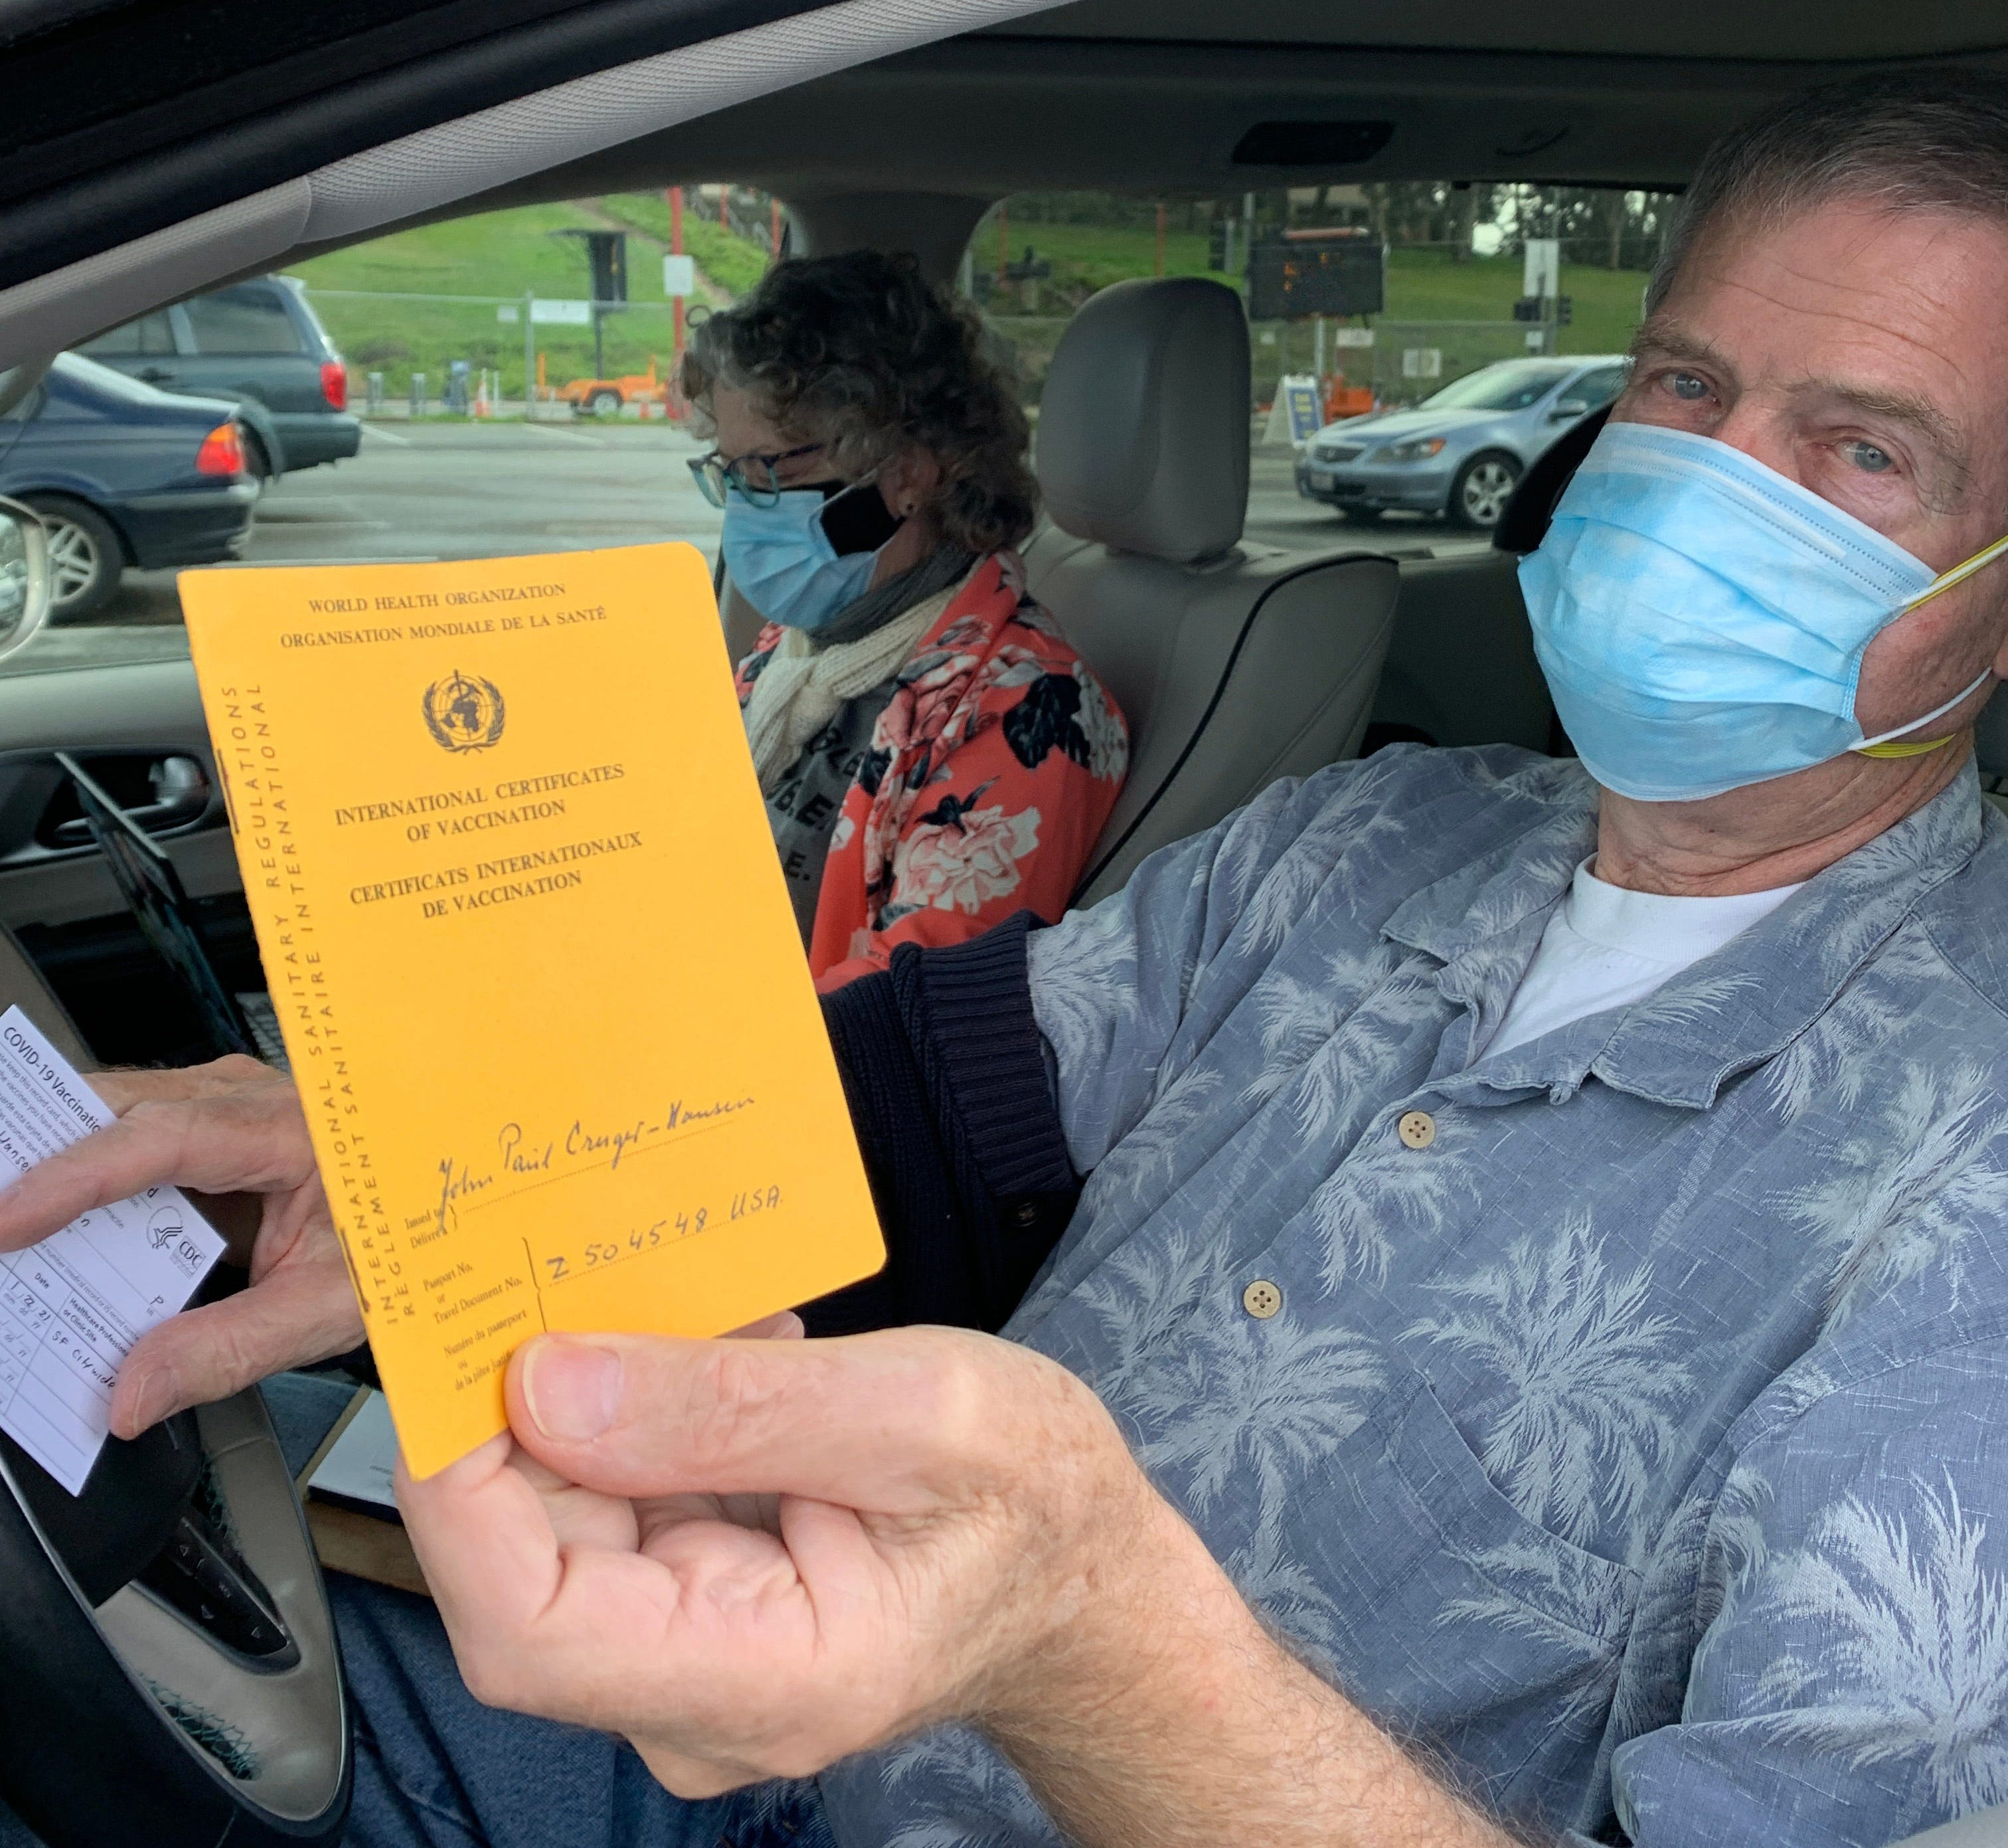 John Paul Cruger-Hansen, 77, brought the International Certificate of Vaccination he presented when he came to the USA decades ago from Denmark that proved he'd been vaccinated for smallpox. He hoped to get his COVID-19 vaccination noted in it at a mass vaccination clinic in San Francisco on Jan. 22.